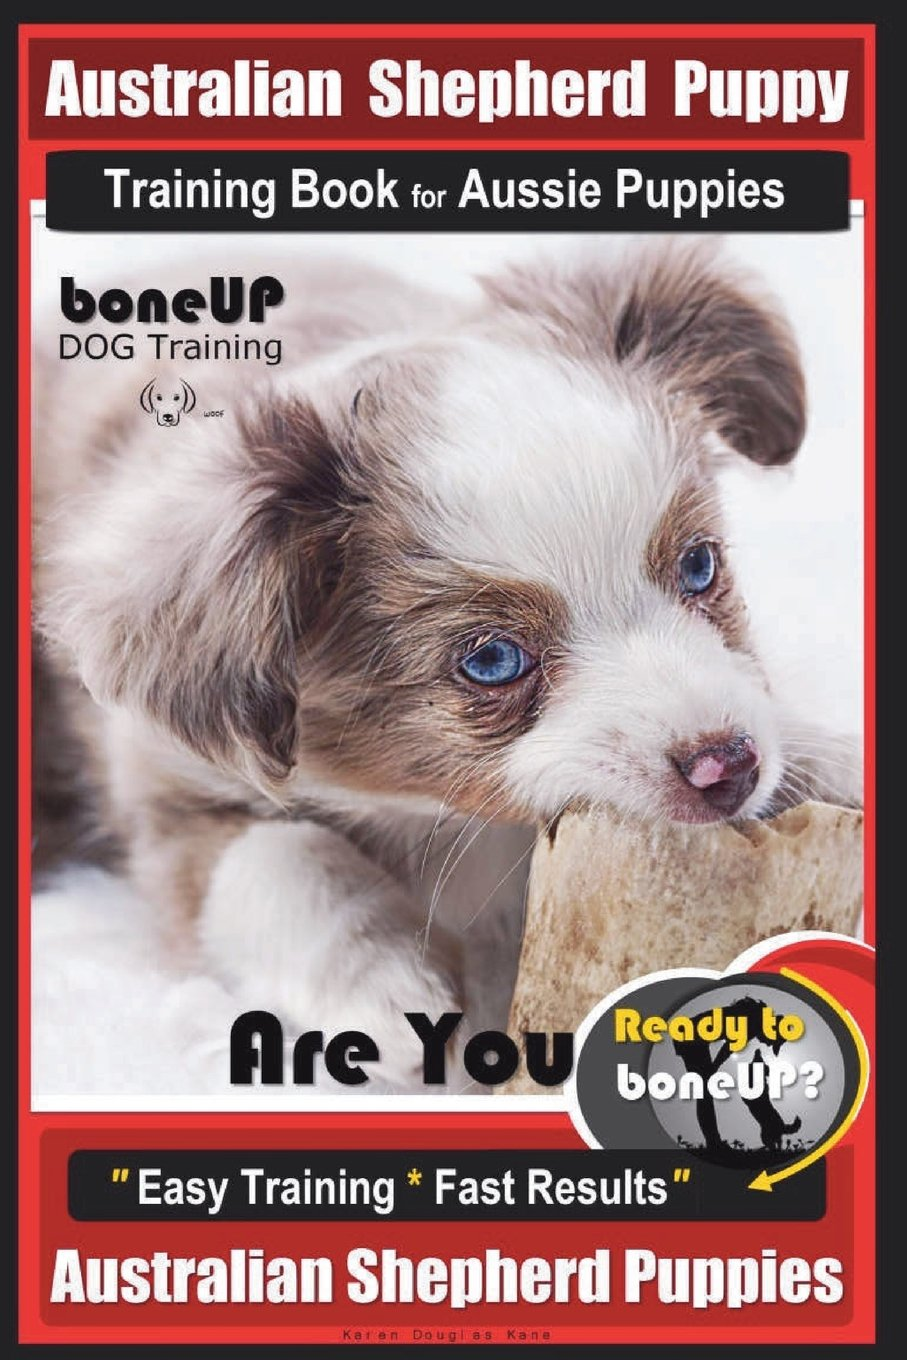 Australian Shepherd Puppy Training Book for Aussie Puppies By BoneUP DOG Training: Are You Ready to Bone Up? Easy Training * Fast Results Australian Shepherd Puppies